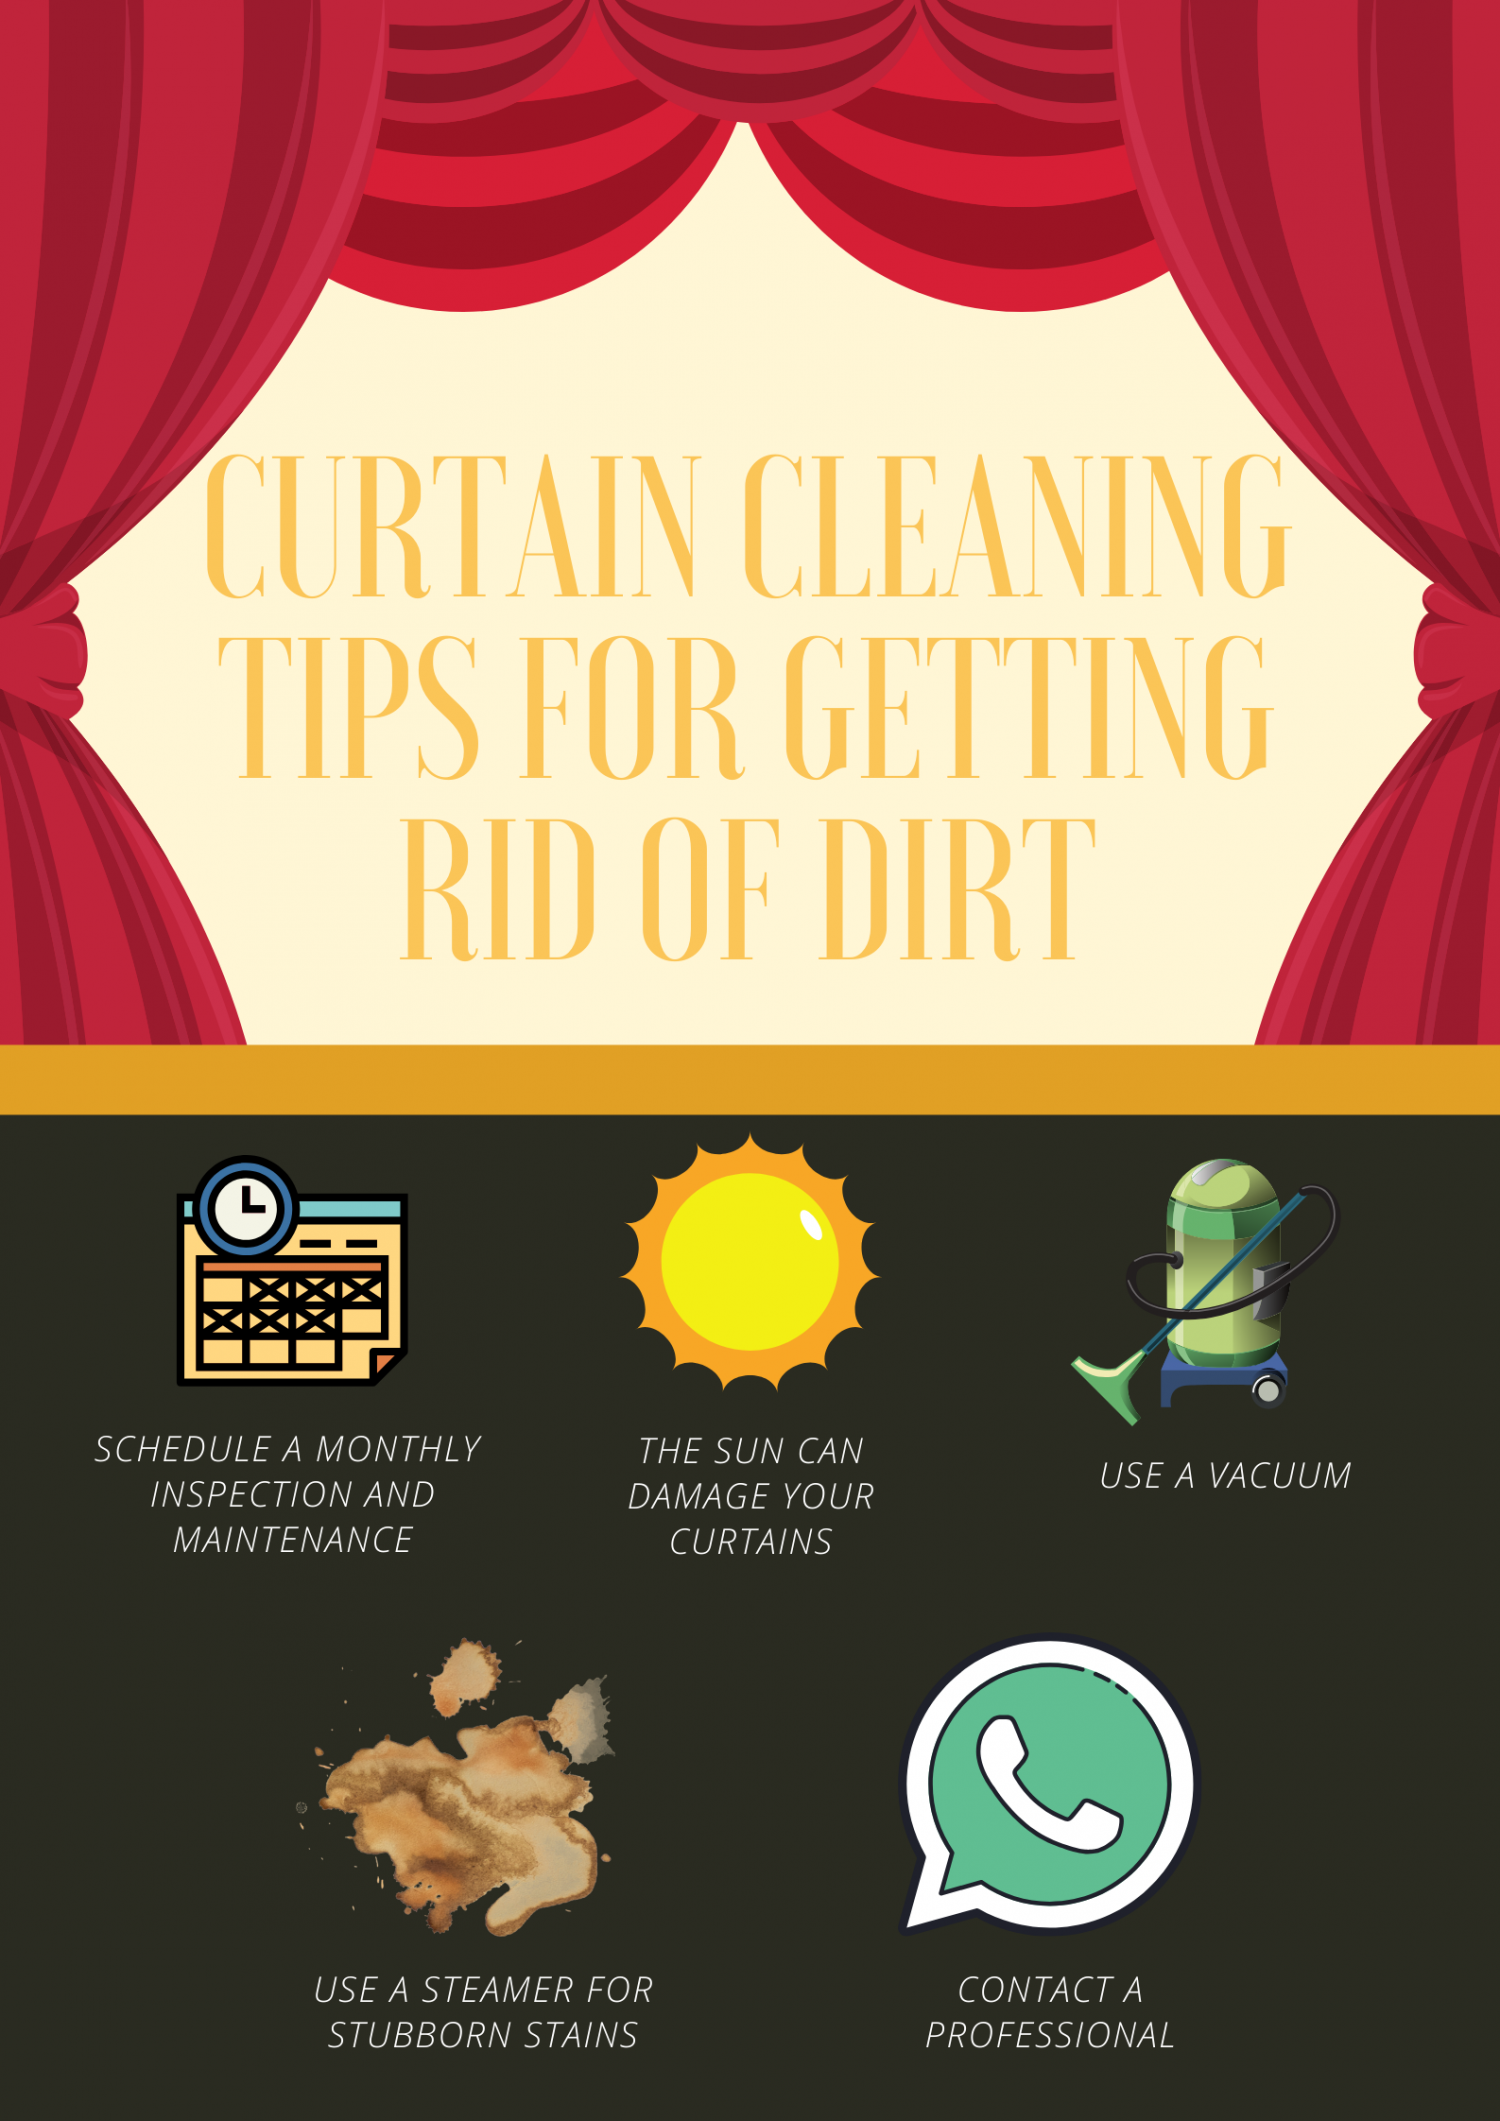 Curtain Cleaning Tips For Getting Rid Of Dirt Infographic